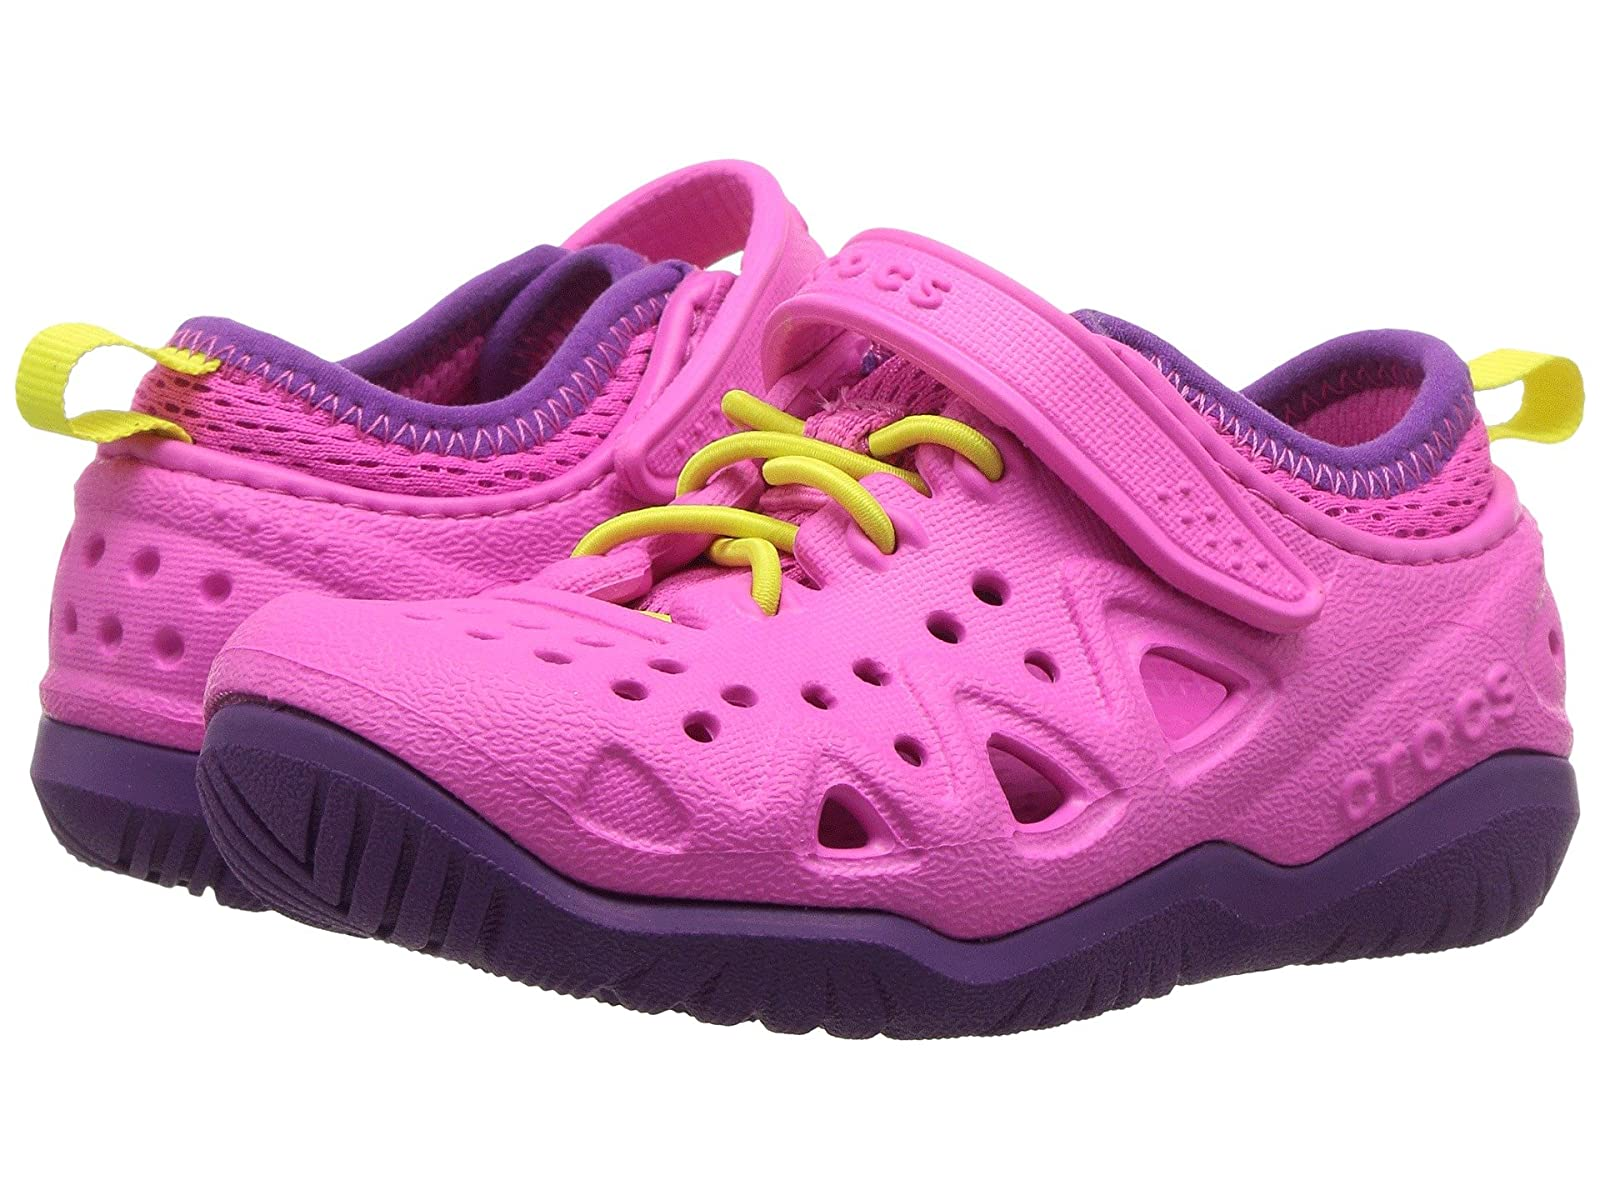 Crocs Kids Swiftwater Play Shoe (Toddler/Little Kid)Atmospheric grades have affordable shoes